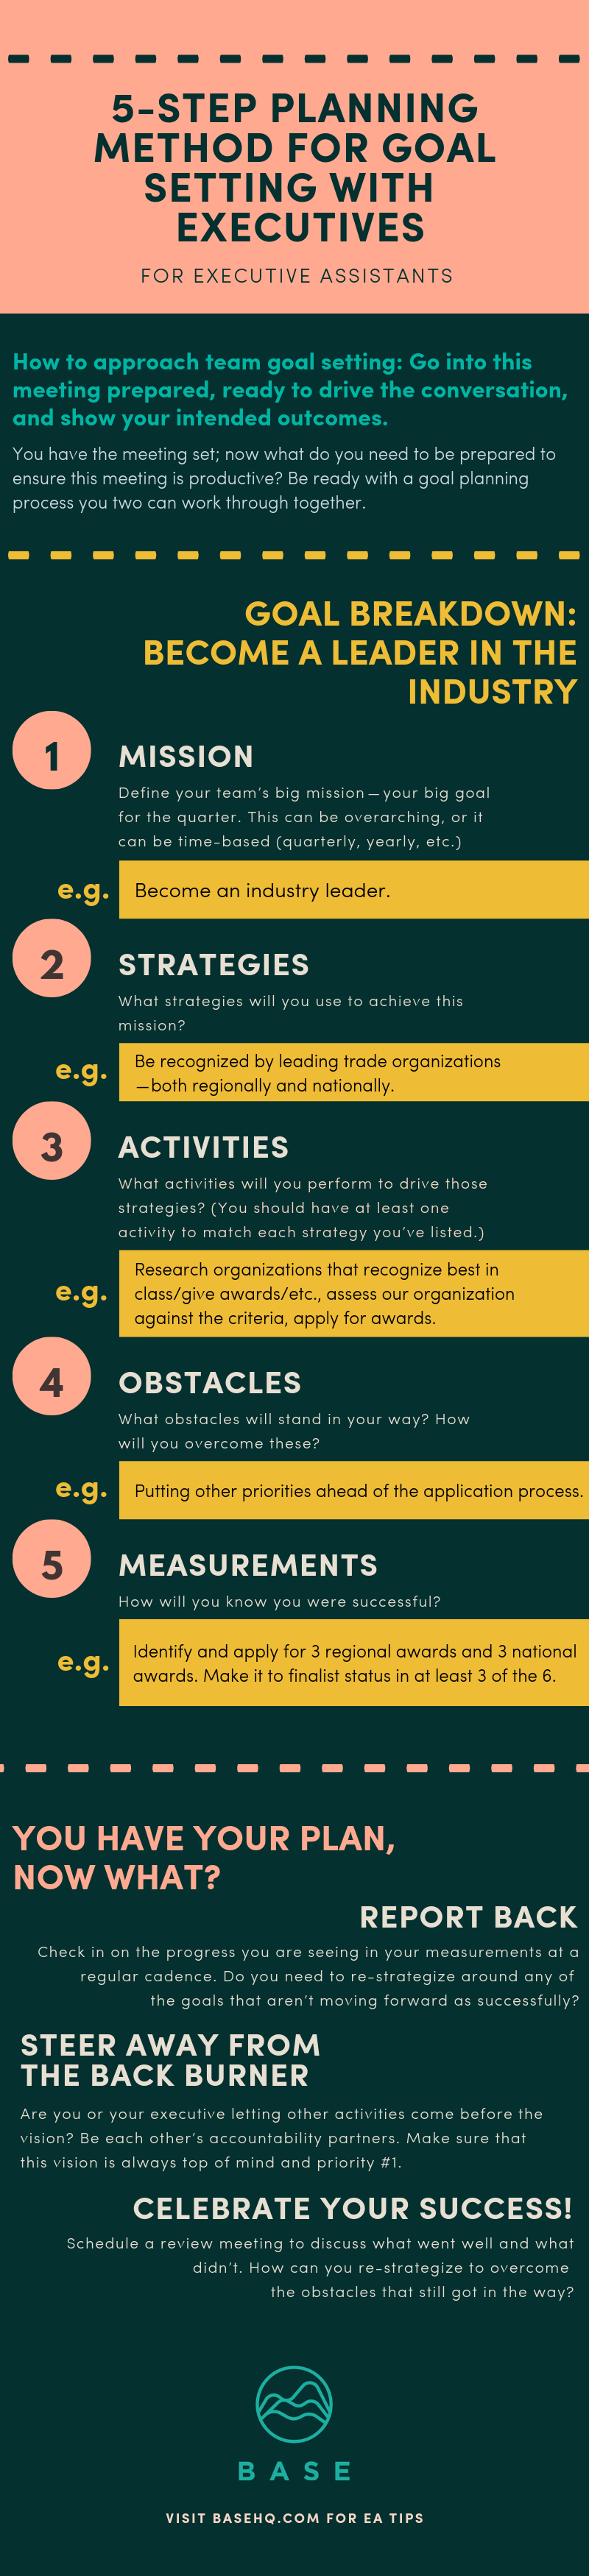 5-step goal planning infographic (3)